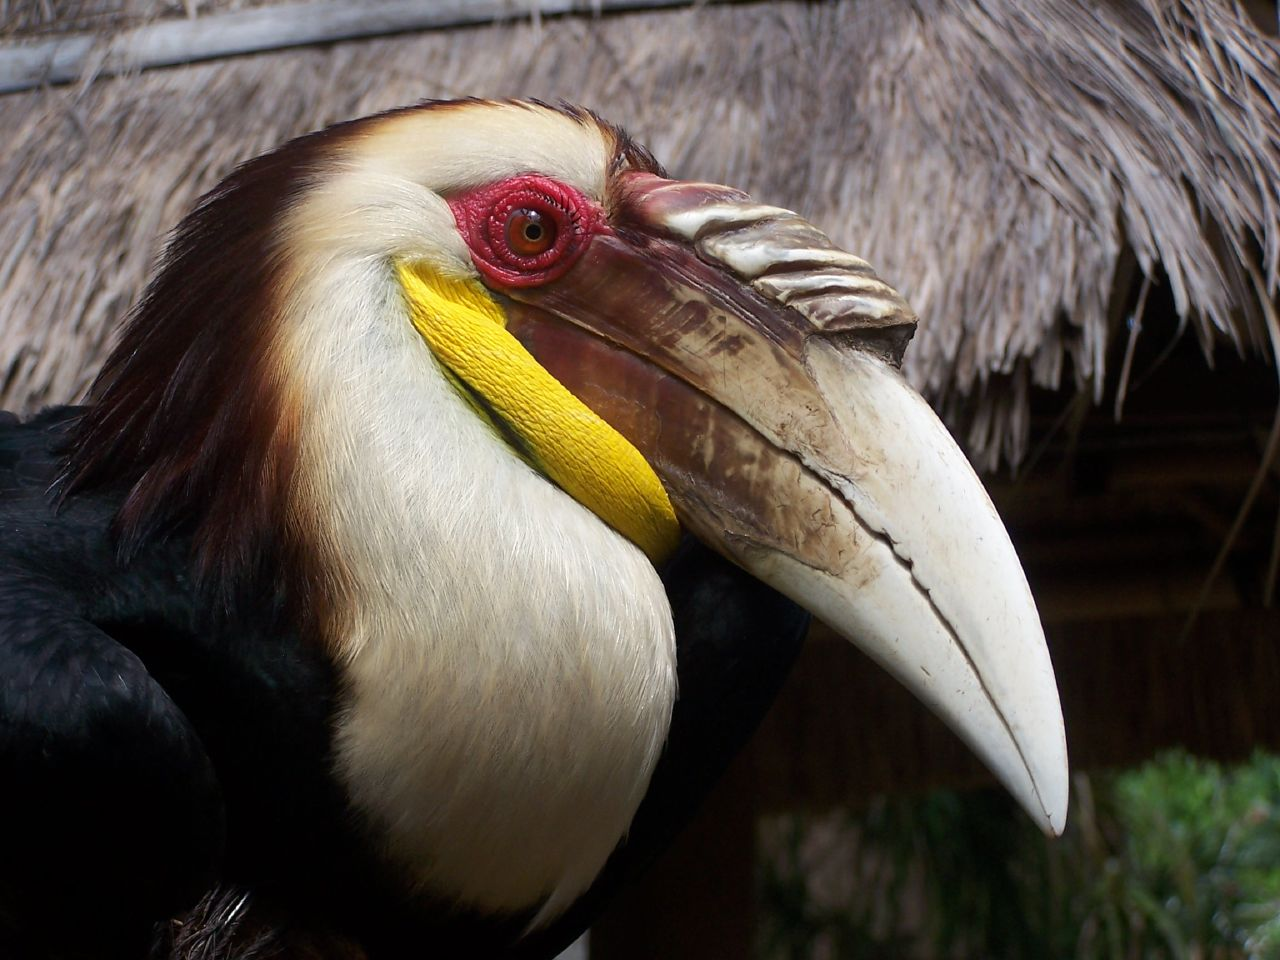 Wreathed Hornbill File:Wreathed H...